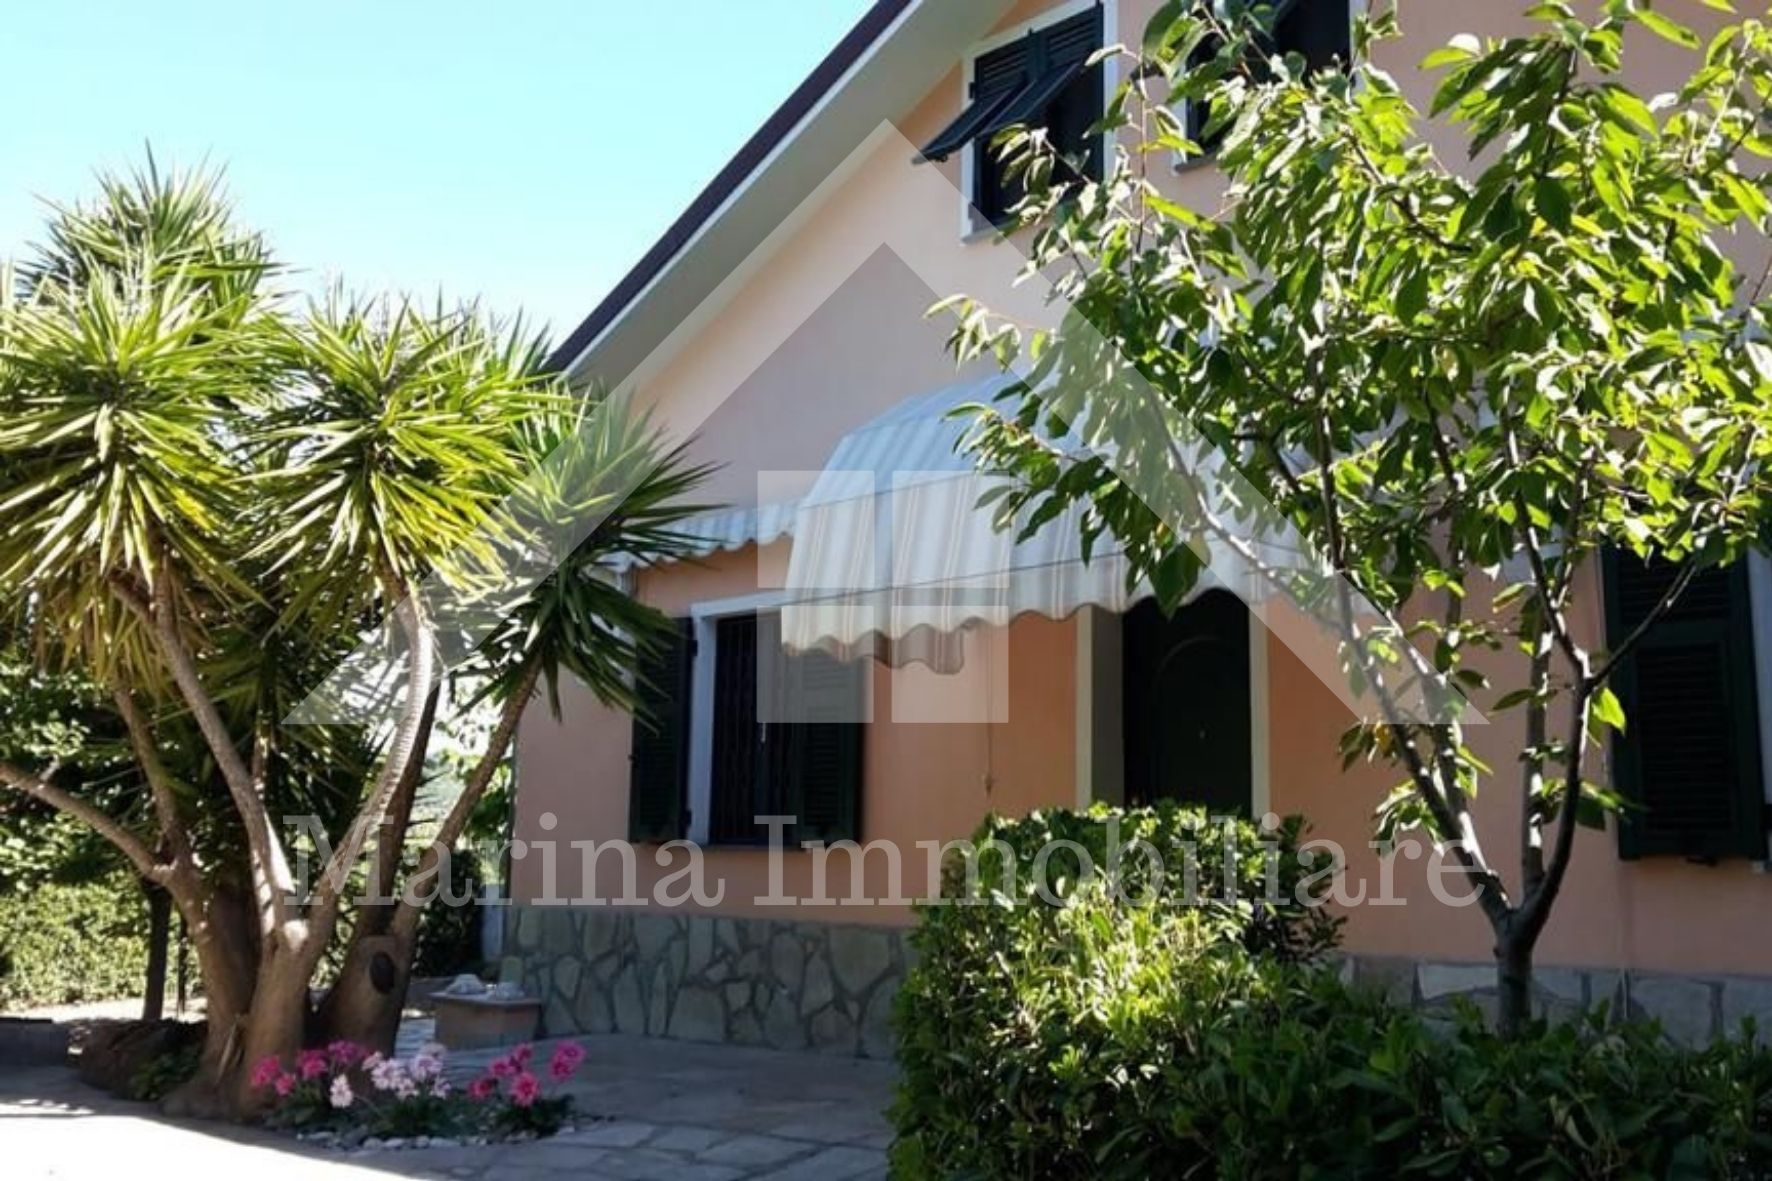 Renovated freestanding house in Oneglia